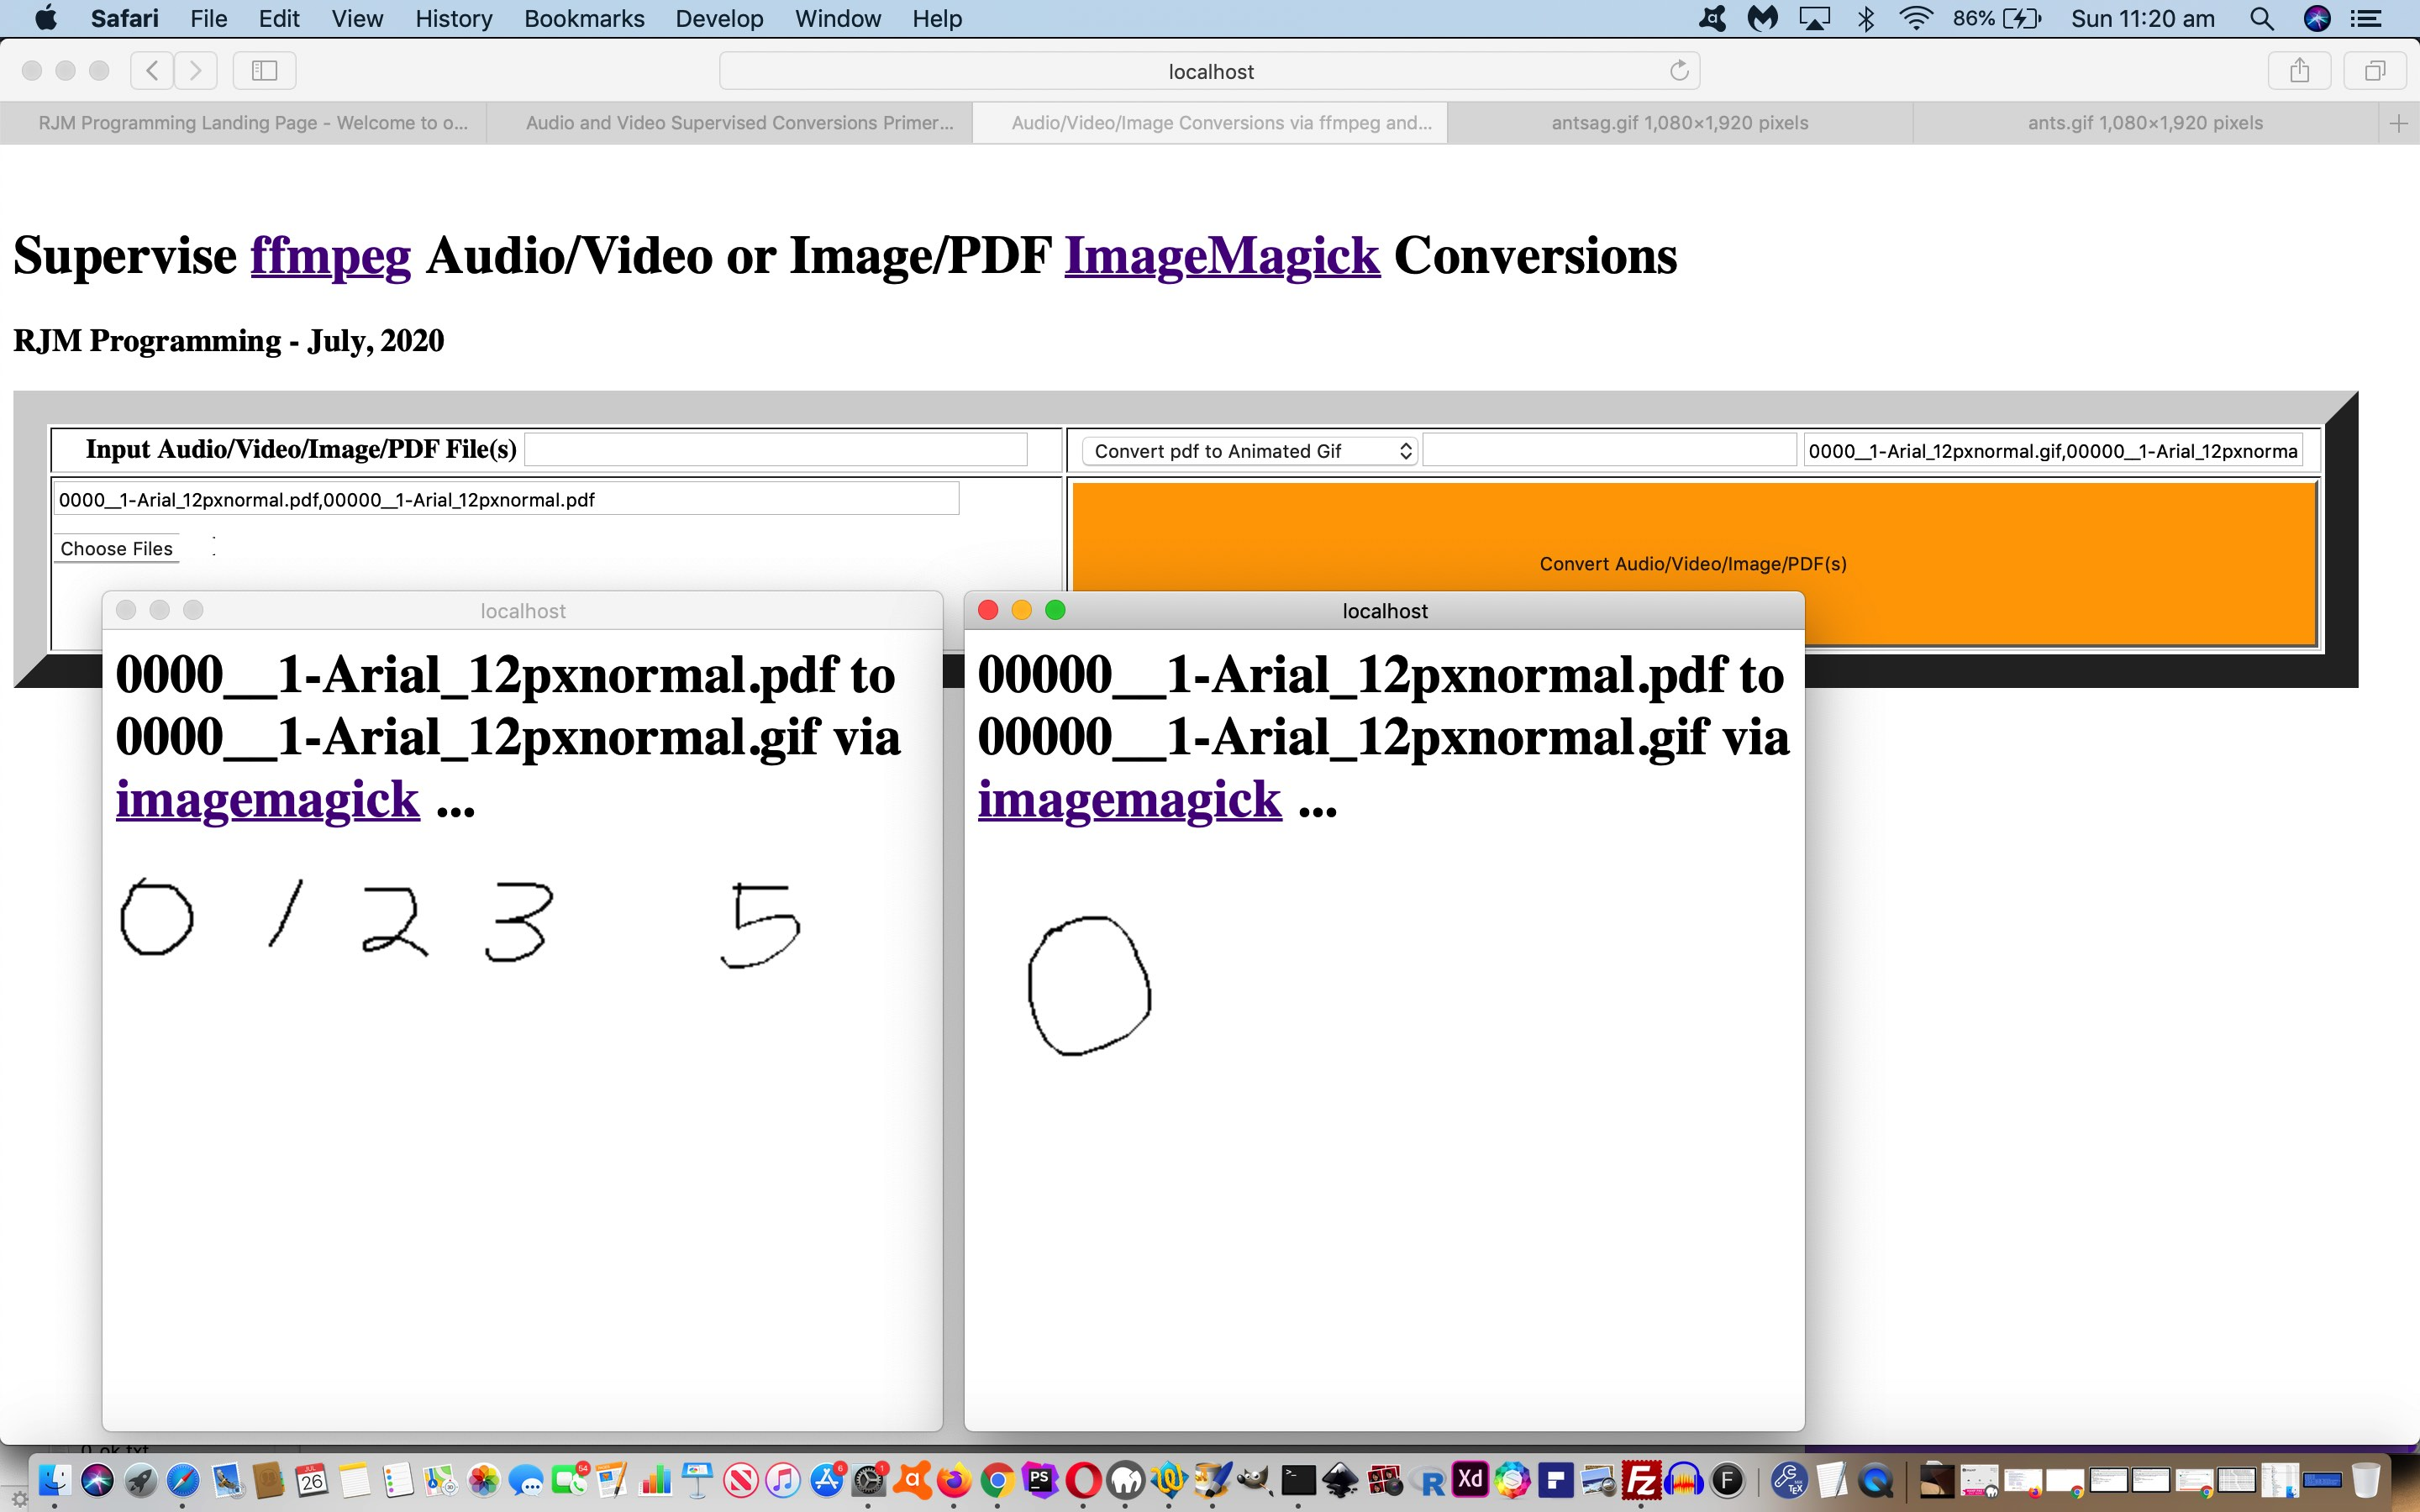 Image/PDF and Audio/Video Supervised Conversions Tutorial